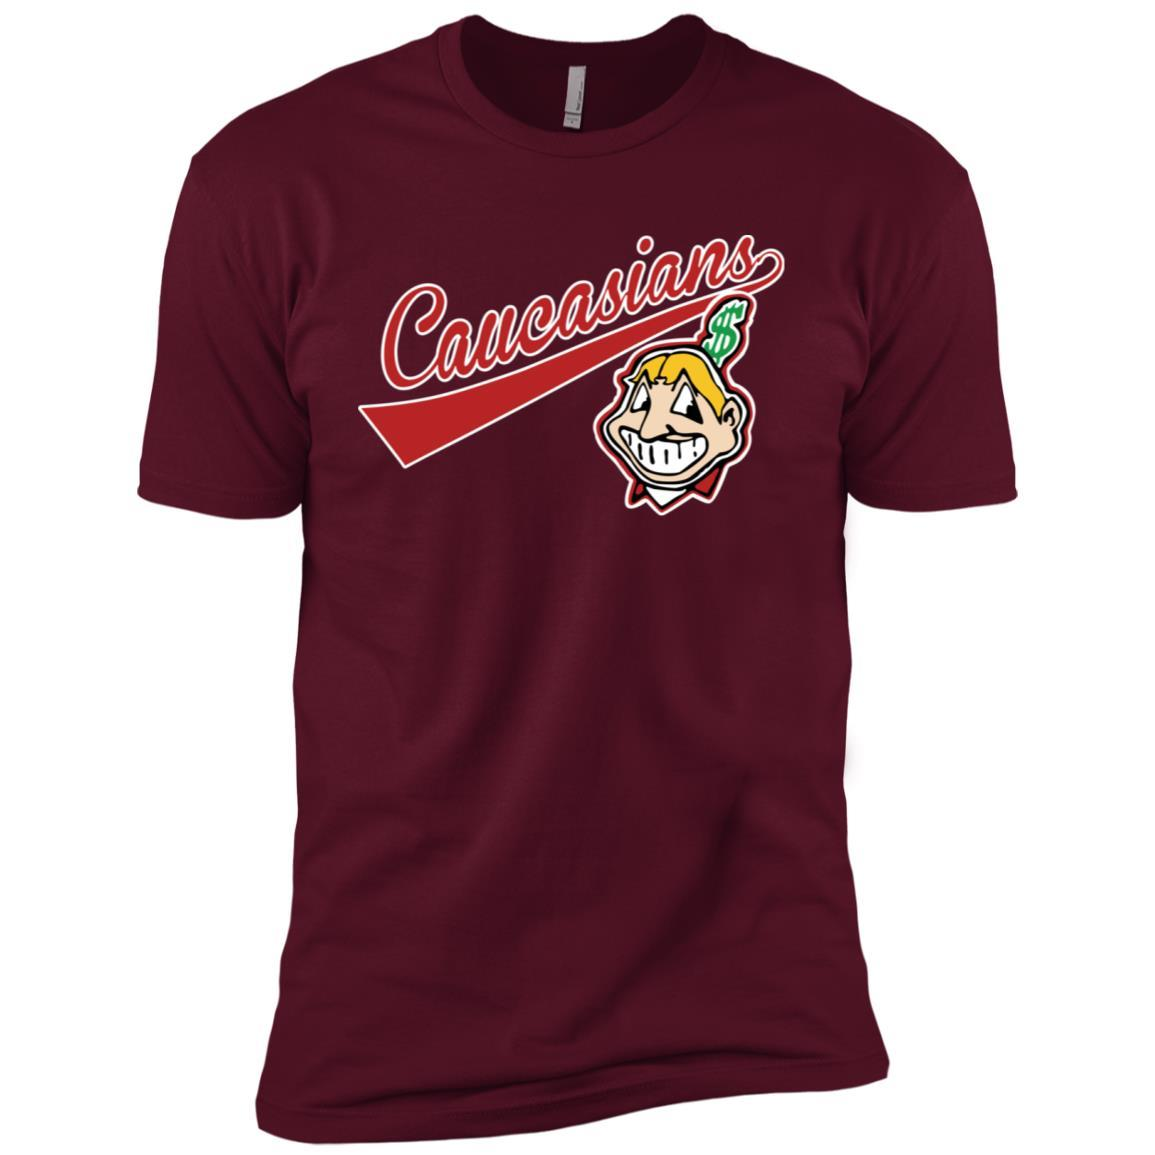 Cleveland Caucasians Native Go Indians - Short Sleeve T-Shirt Maroon / 3XL